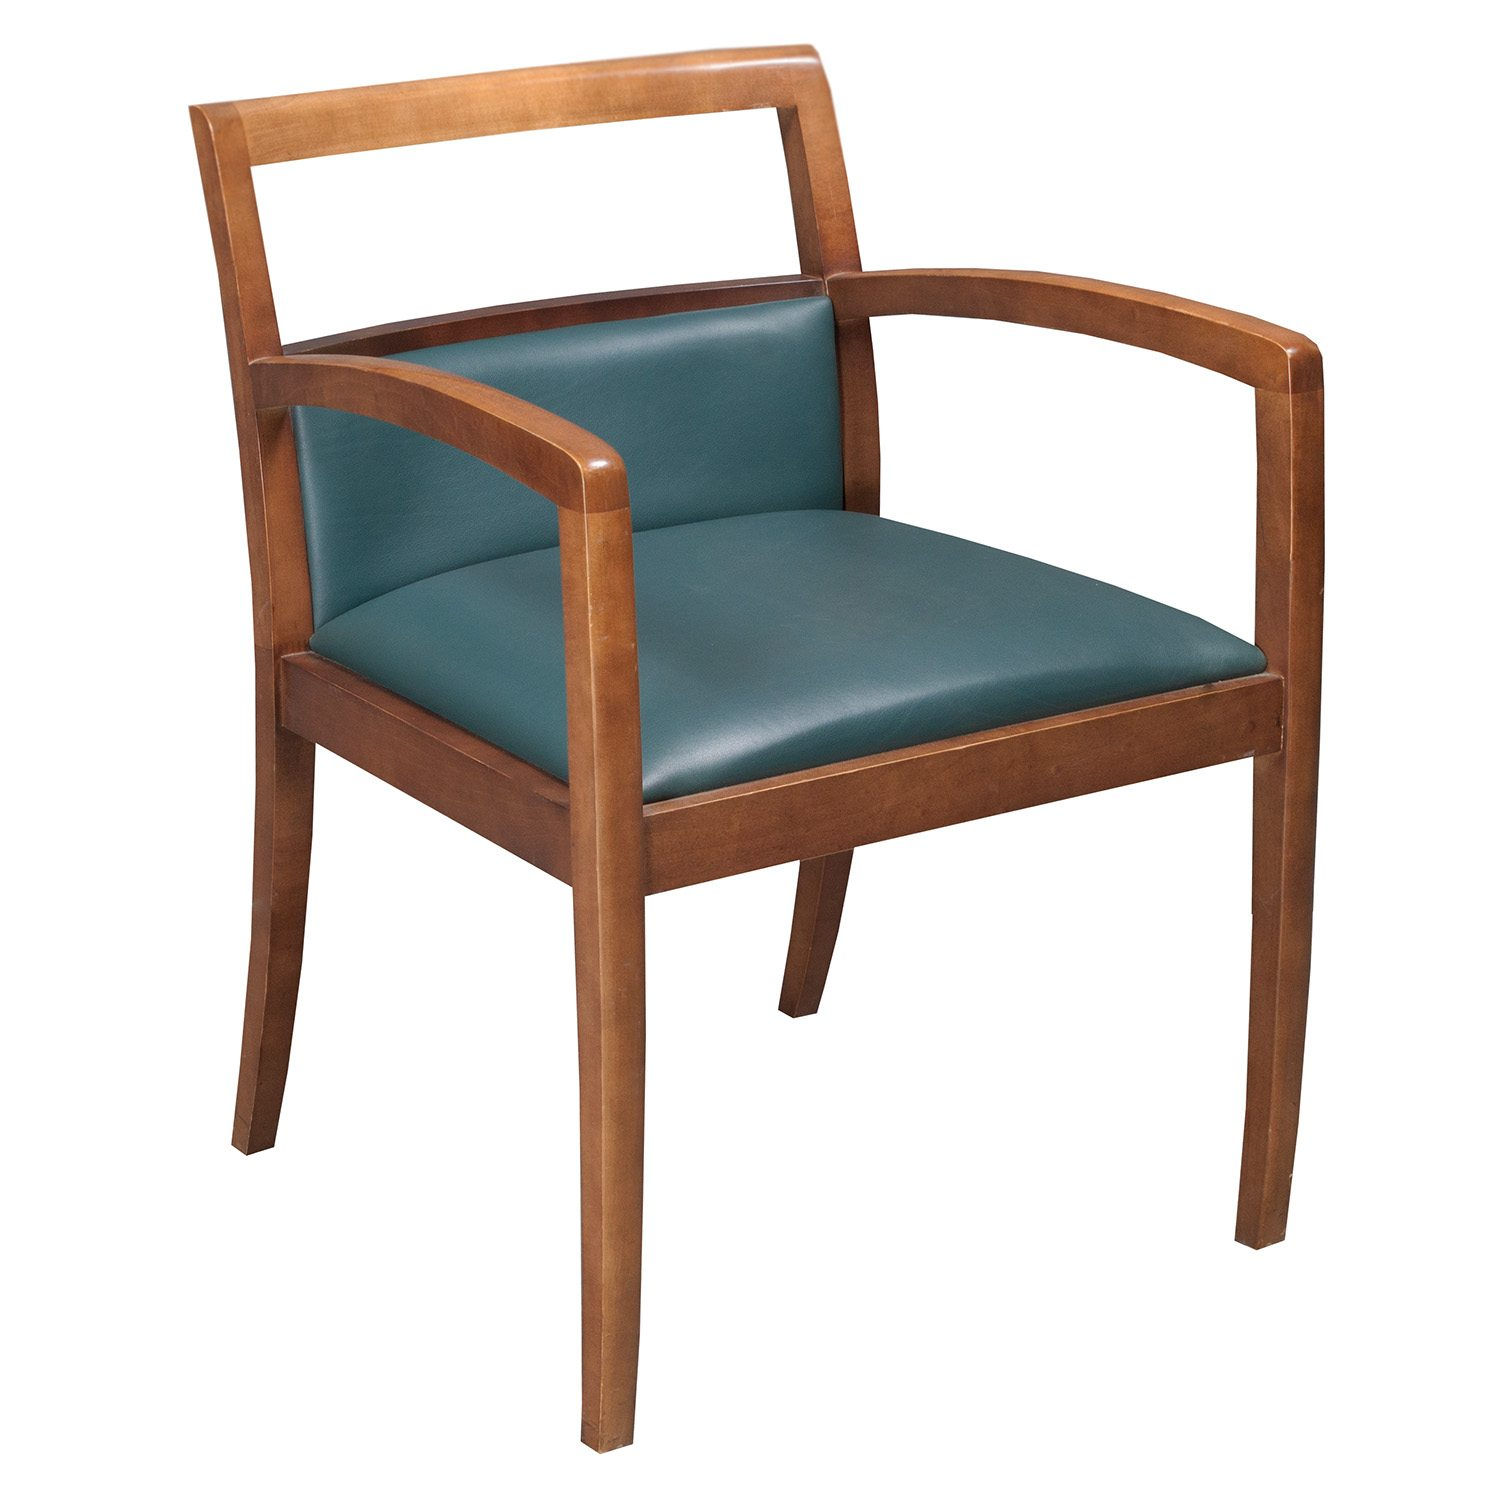 Bernhardt Leather Chair Bernhardt Used Wood And Leather Side Chair Green